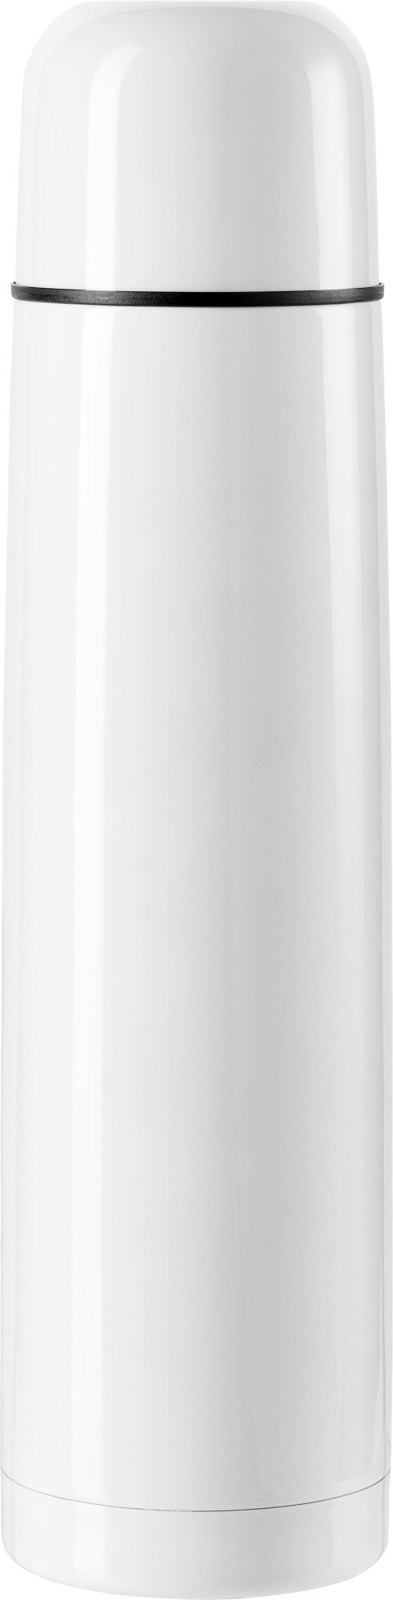 Stainless steel double walled flask - White